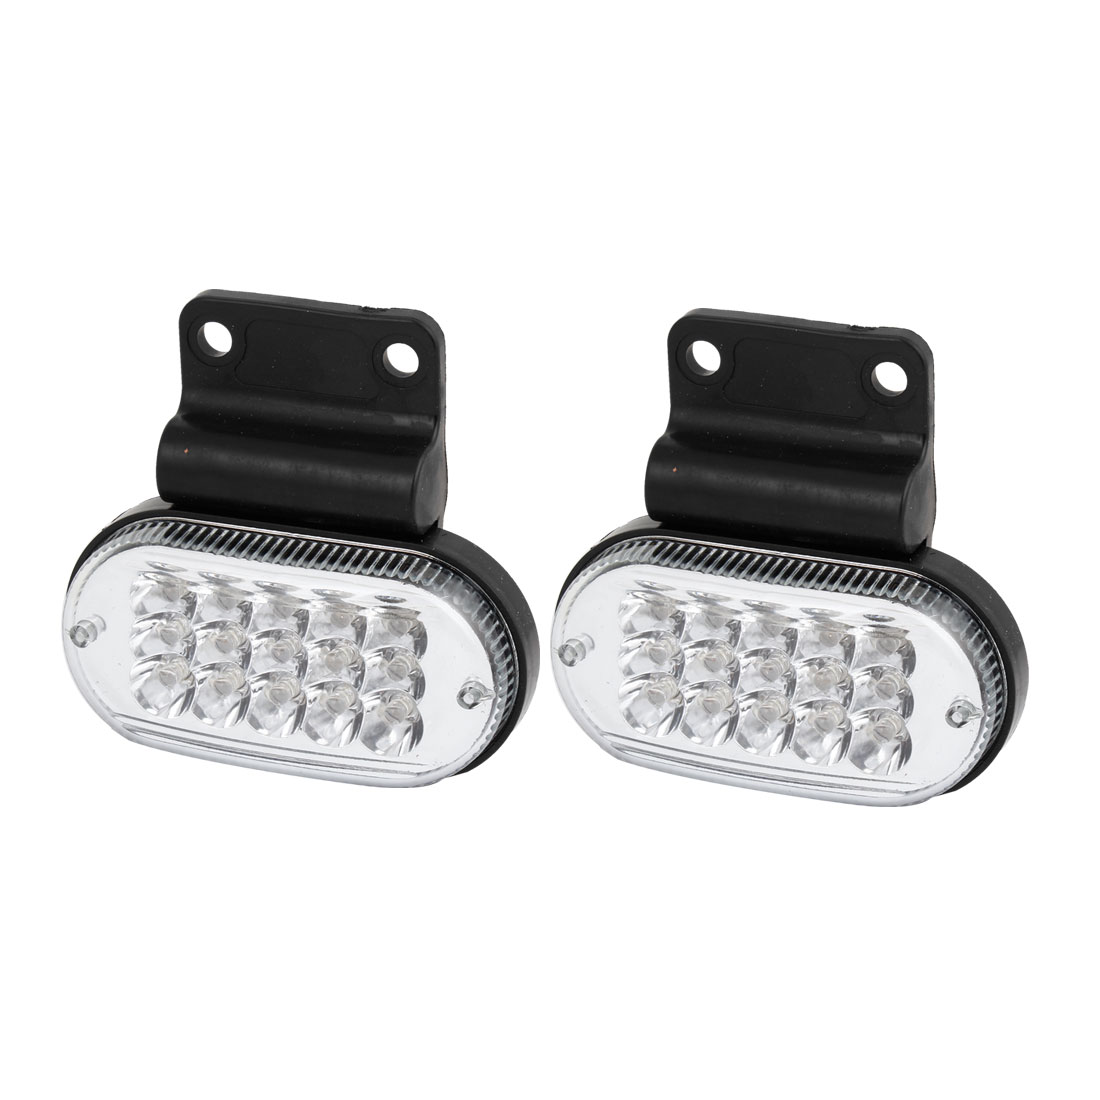 2 Pcs White 15 SMD LED Plastic Case Side Marker Signal Light for Car